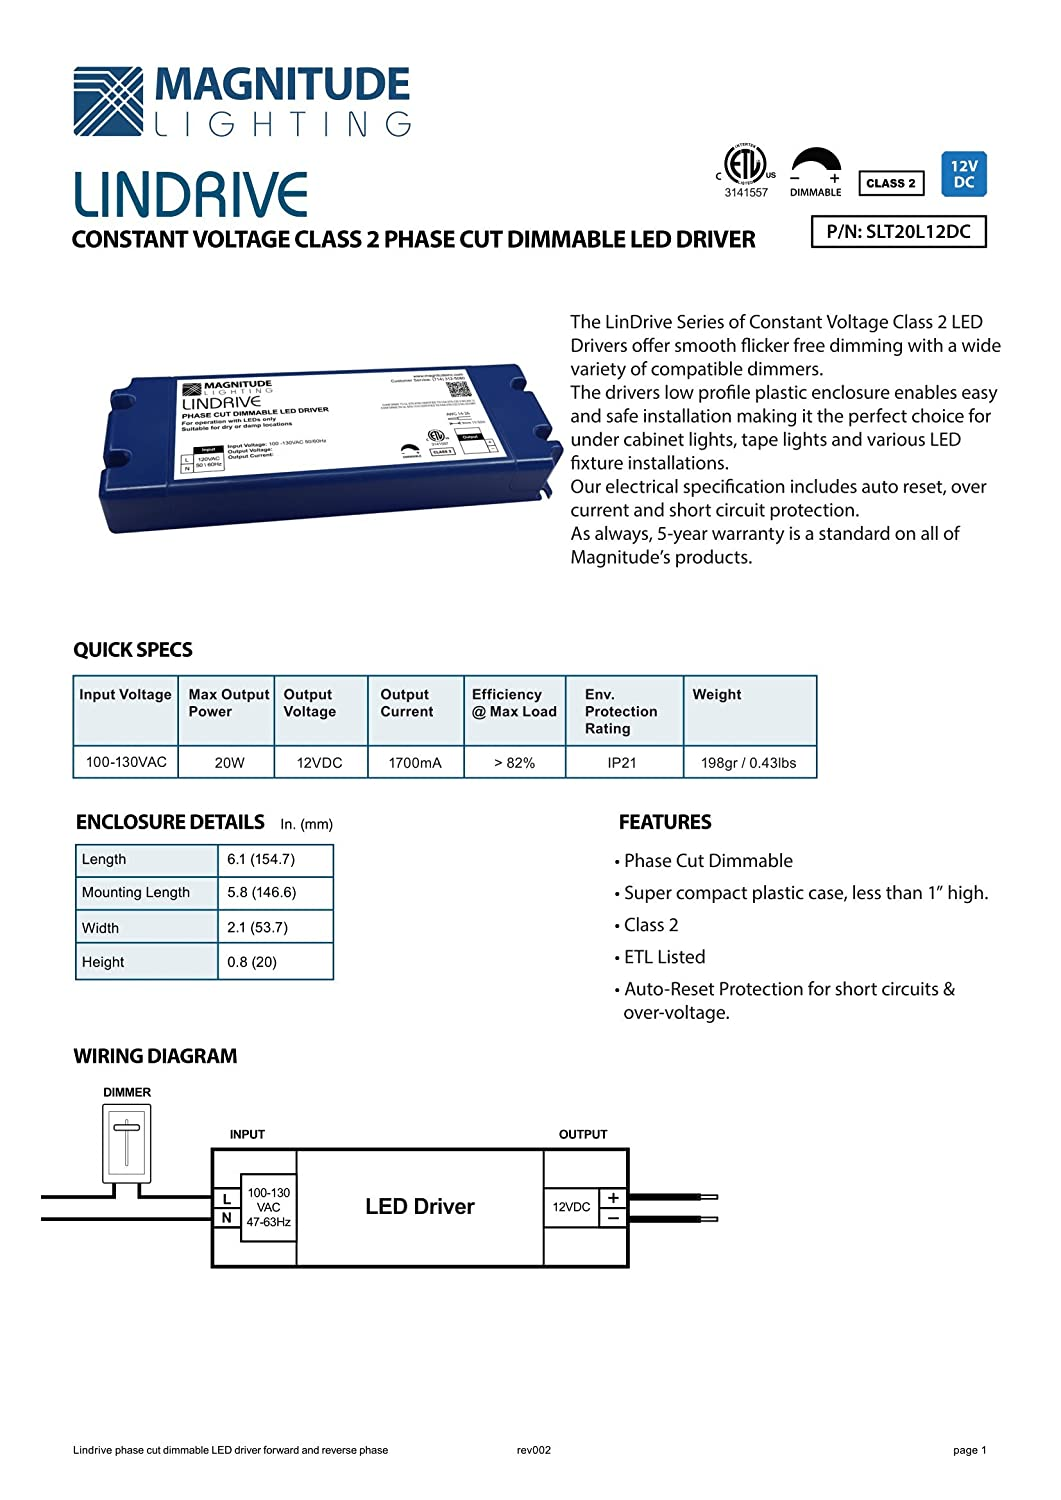 Led Driver Lindrive Magnitude 40w 12v Dimmable Transformer Tled Circuit Diagram Vingt12v To 11 Series X 40 Parallel Slt40l12dc From Inspired Electronic